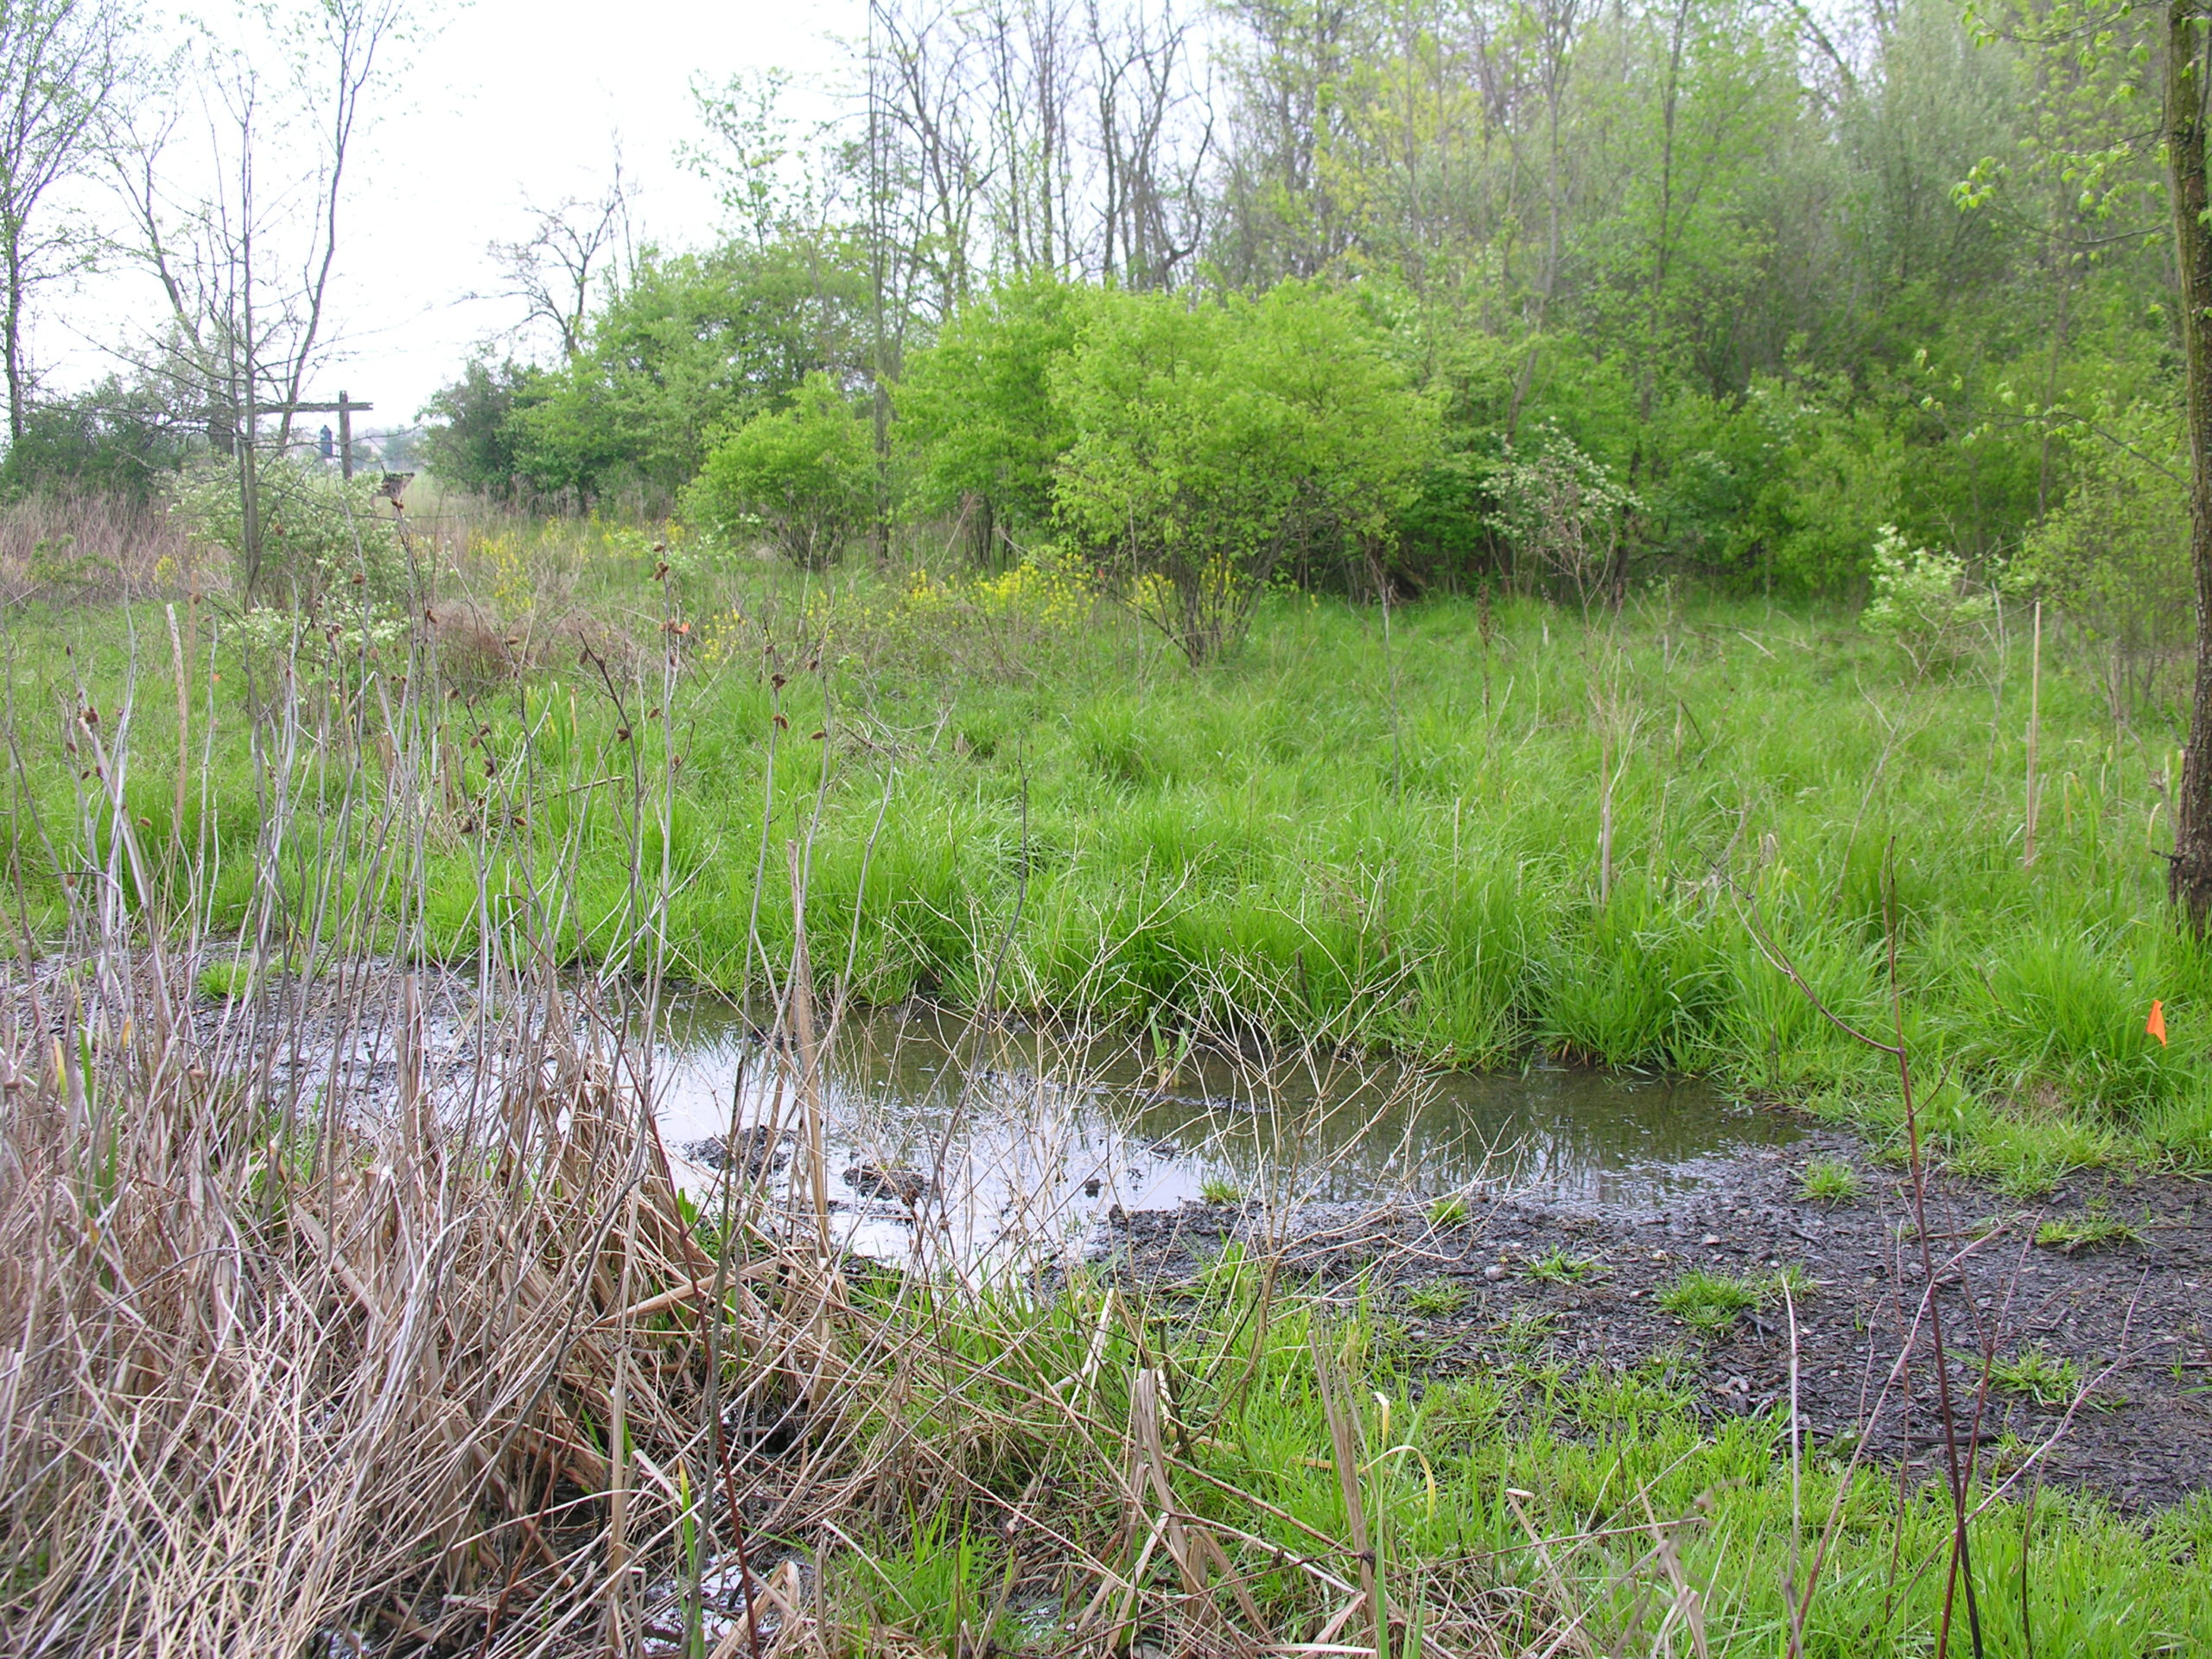 Grassy green area with a low muddy spot. This low muddy spot is a vernal pool.